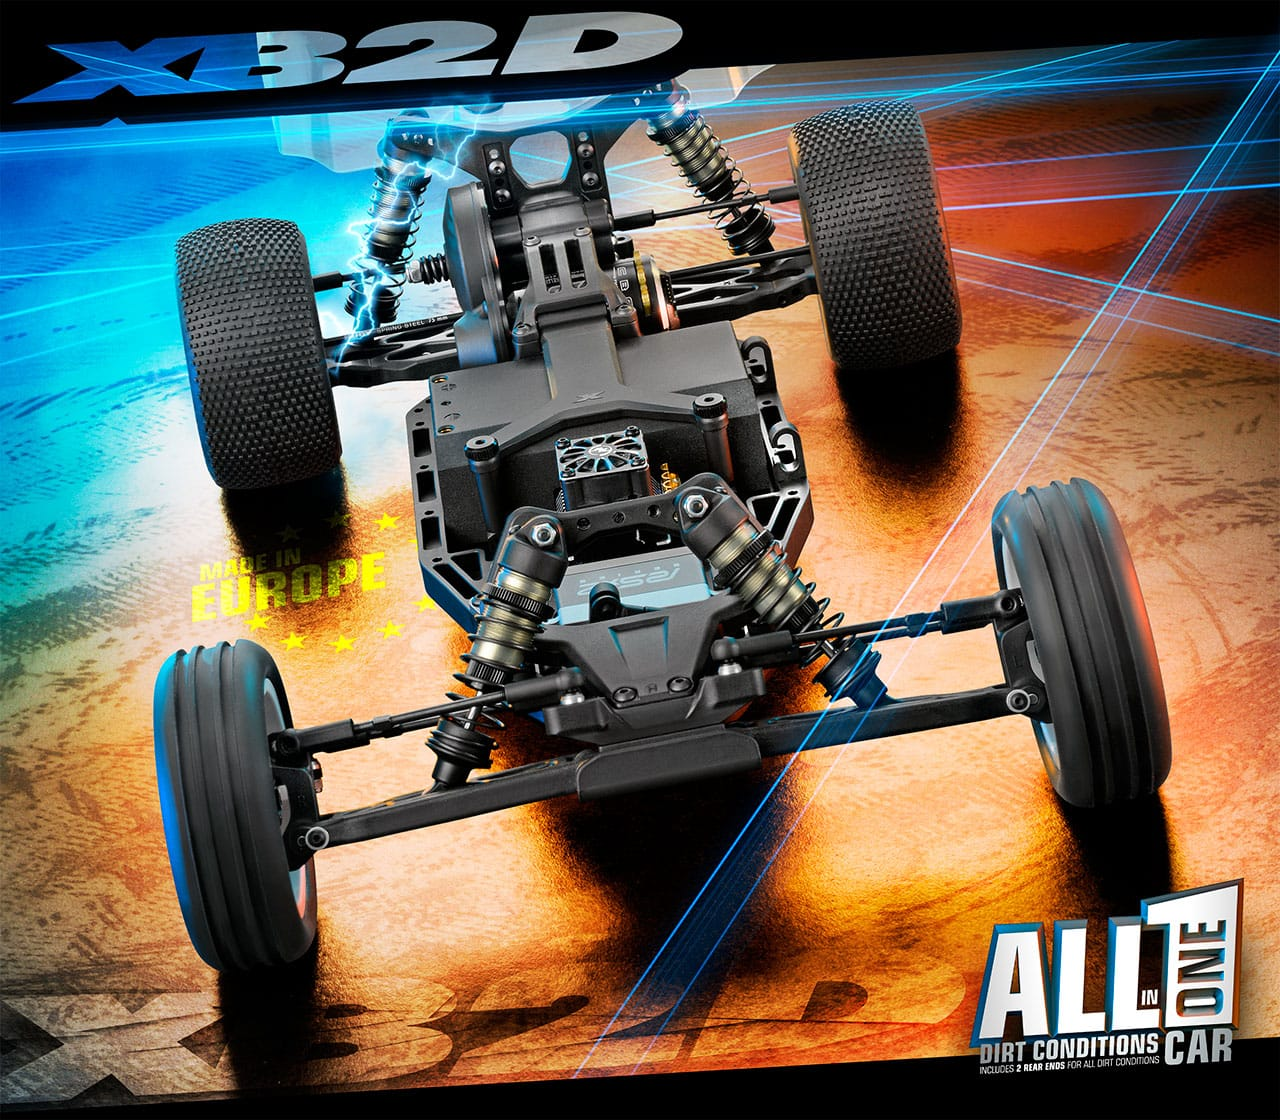 XRay XB2D-19 Competition RC Buggy - Chassis